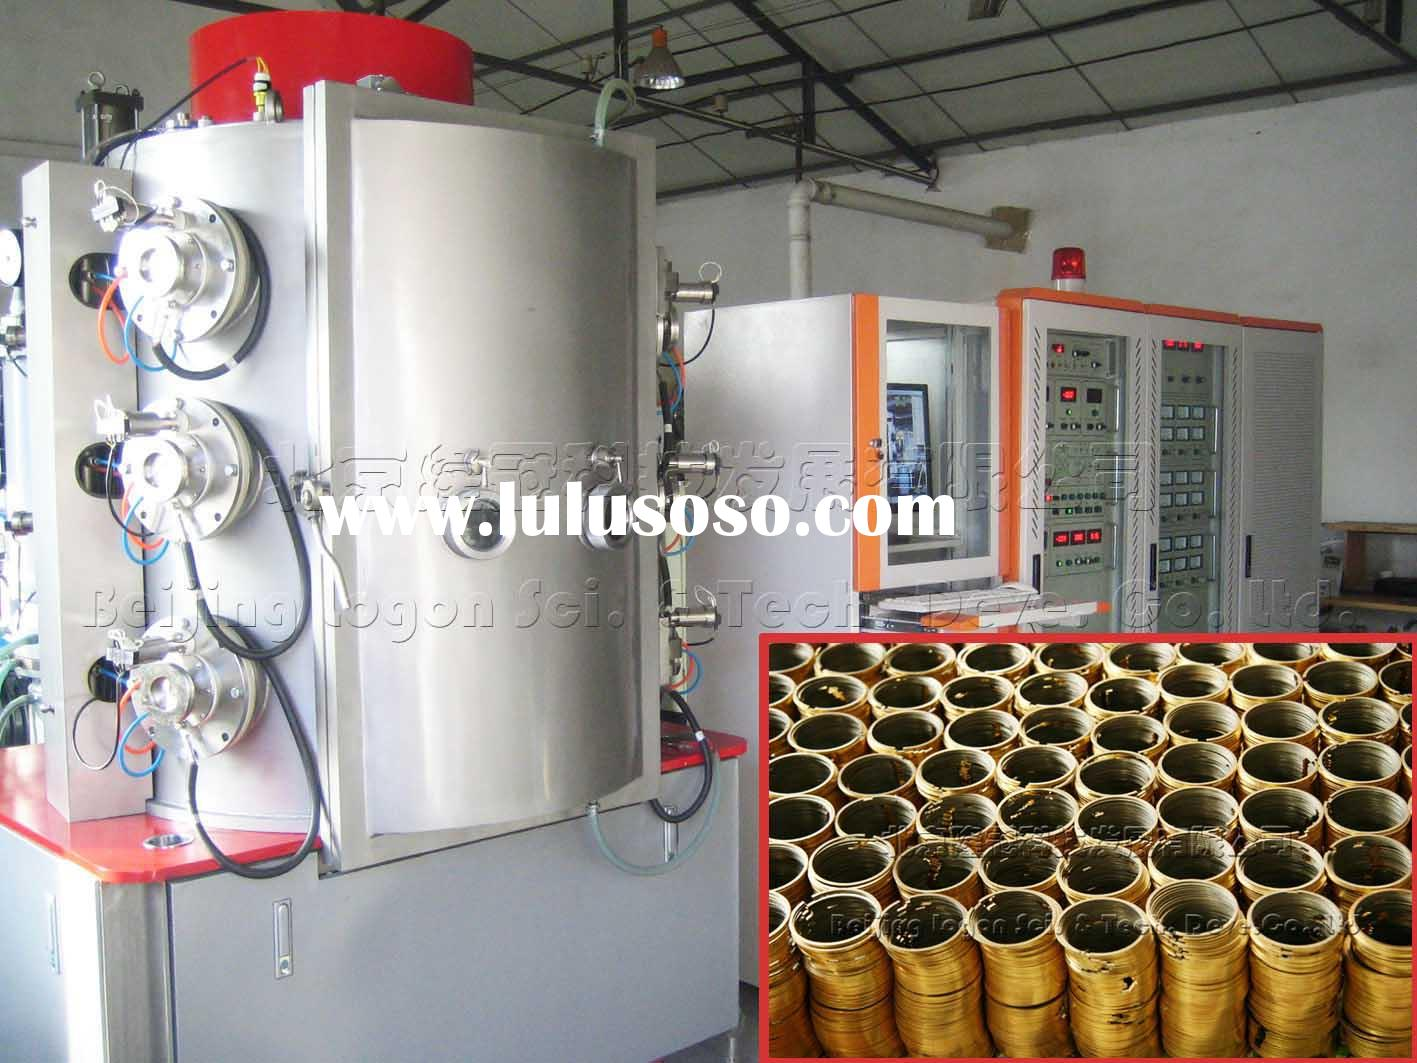 Piston ring PVD vacuum coating machinery pvd coating machine pvd coating equipment